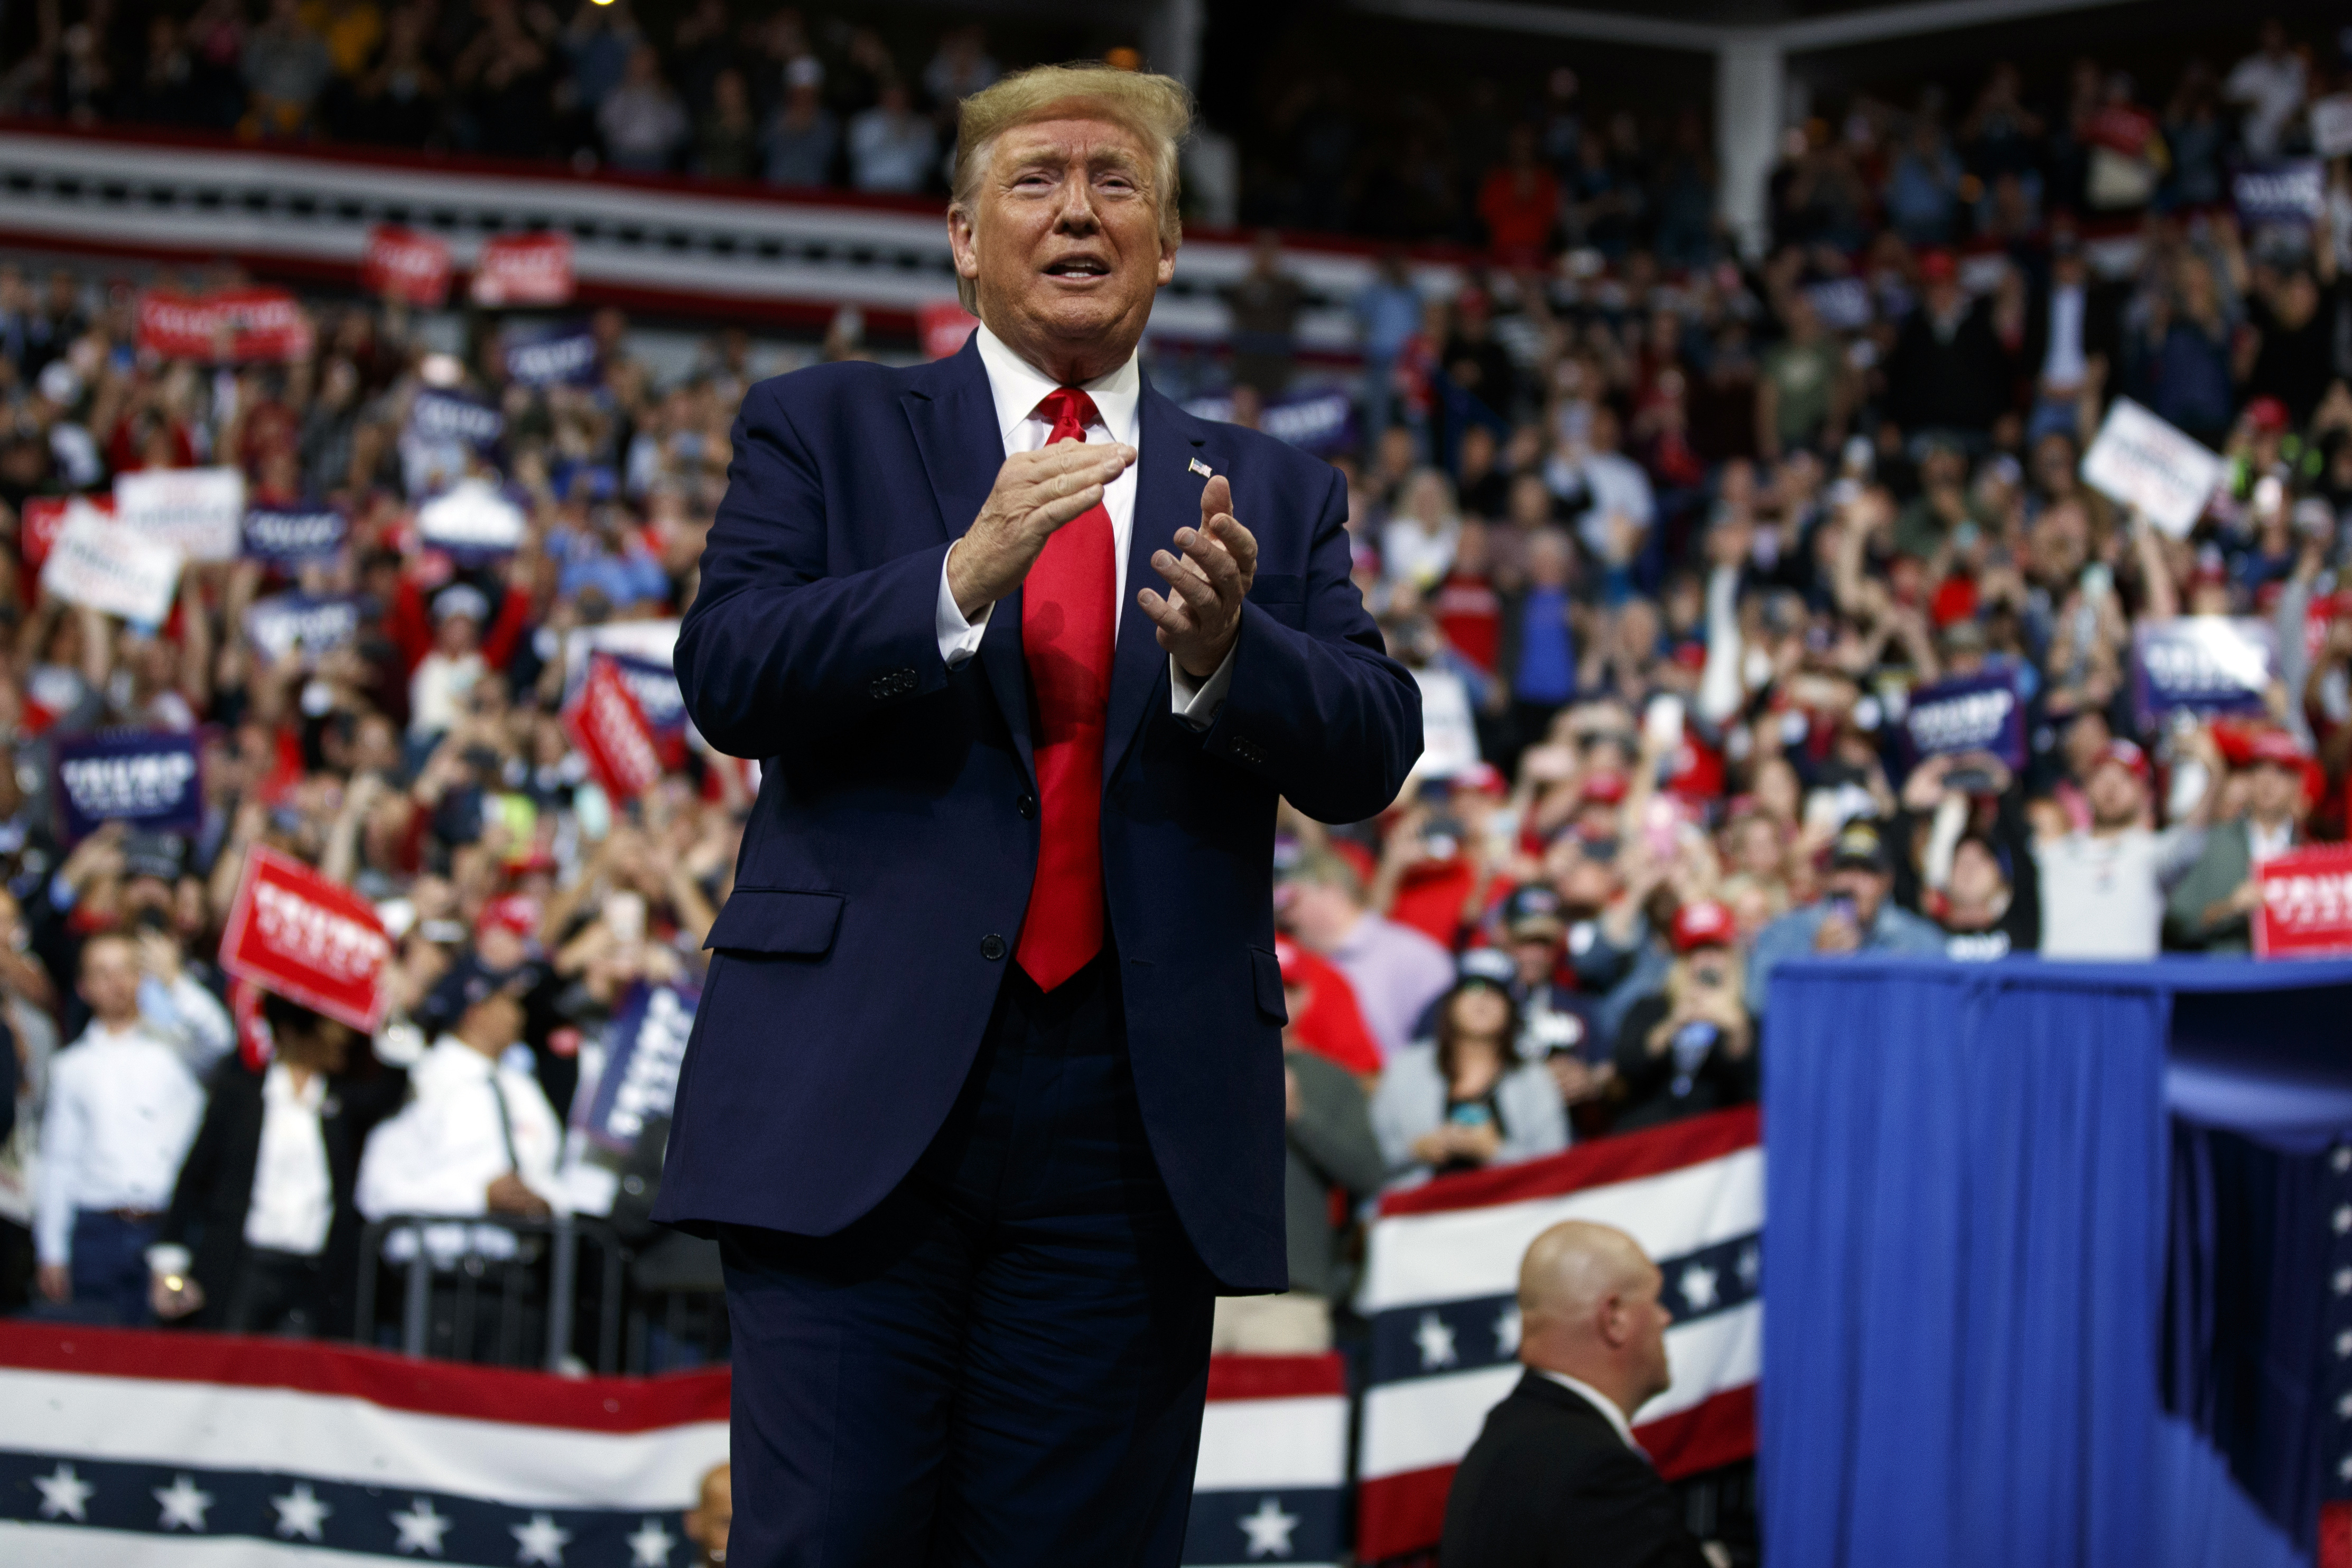 'Disgrace to our country': Trump blasts Ilhan Omar in her home state